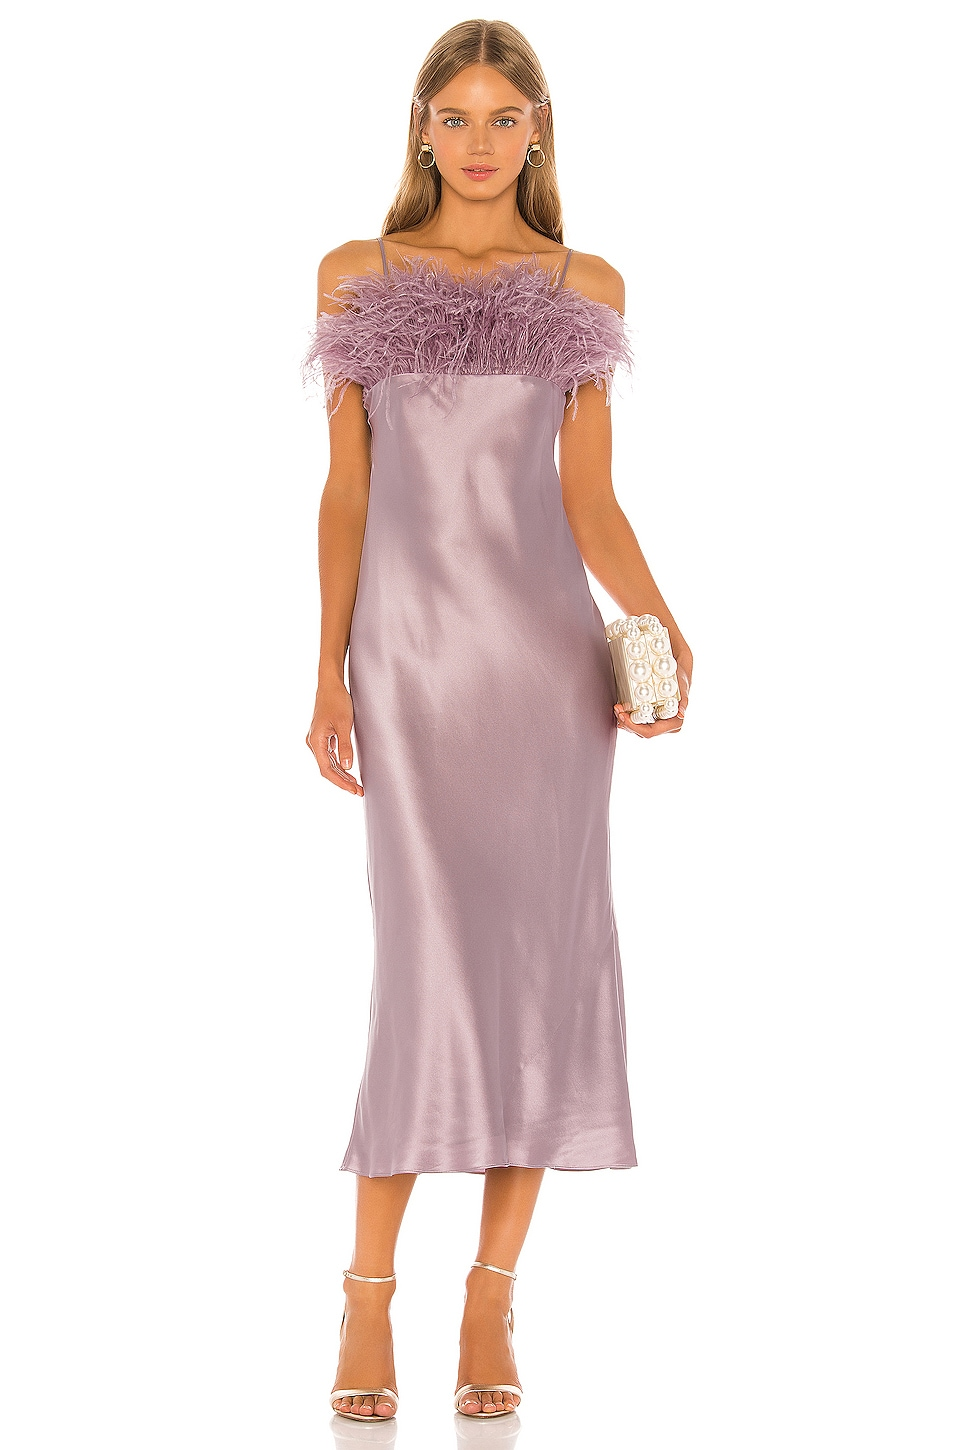 Cinq a Sept Cerise Dress in Sea Fog